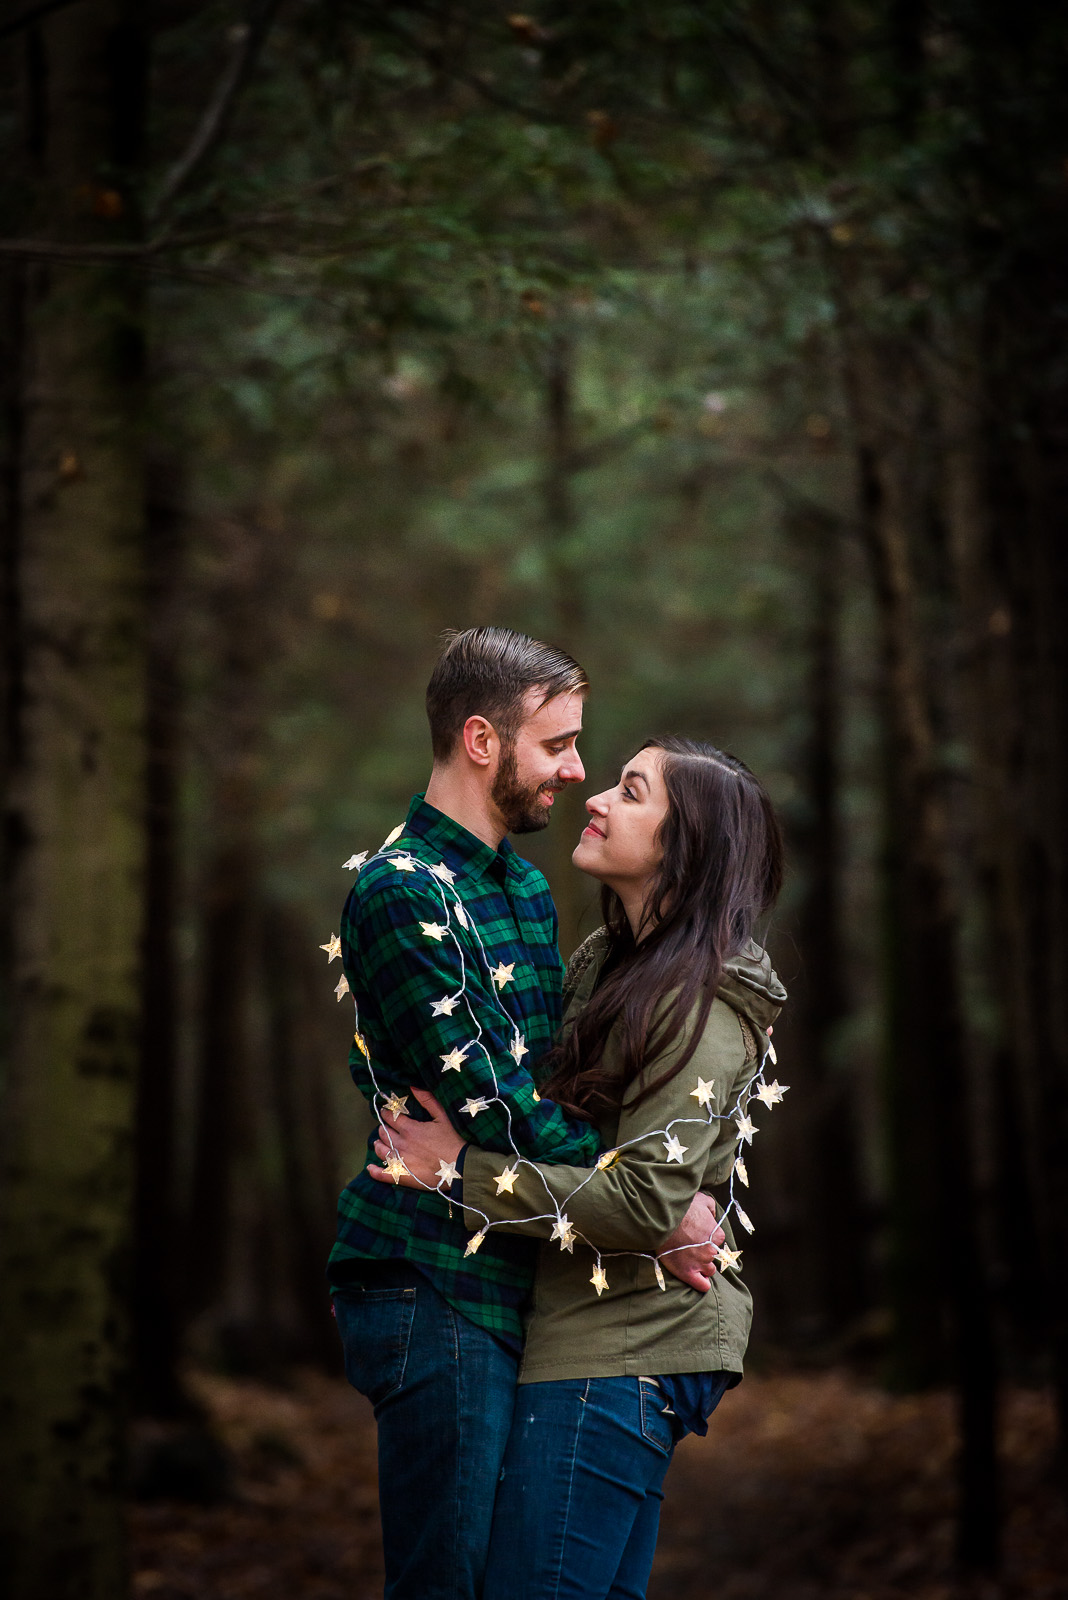 Eric_and_Christy_Photography_Blog_2016_Best_Engagement--20